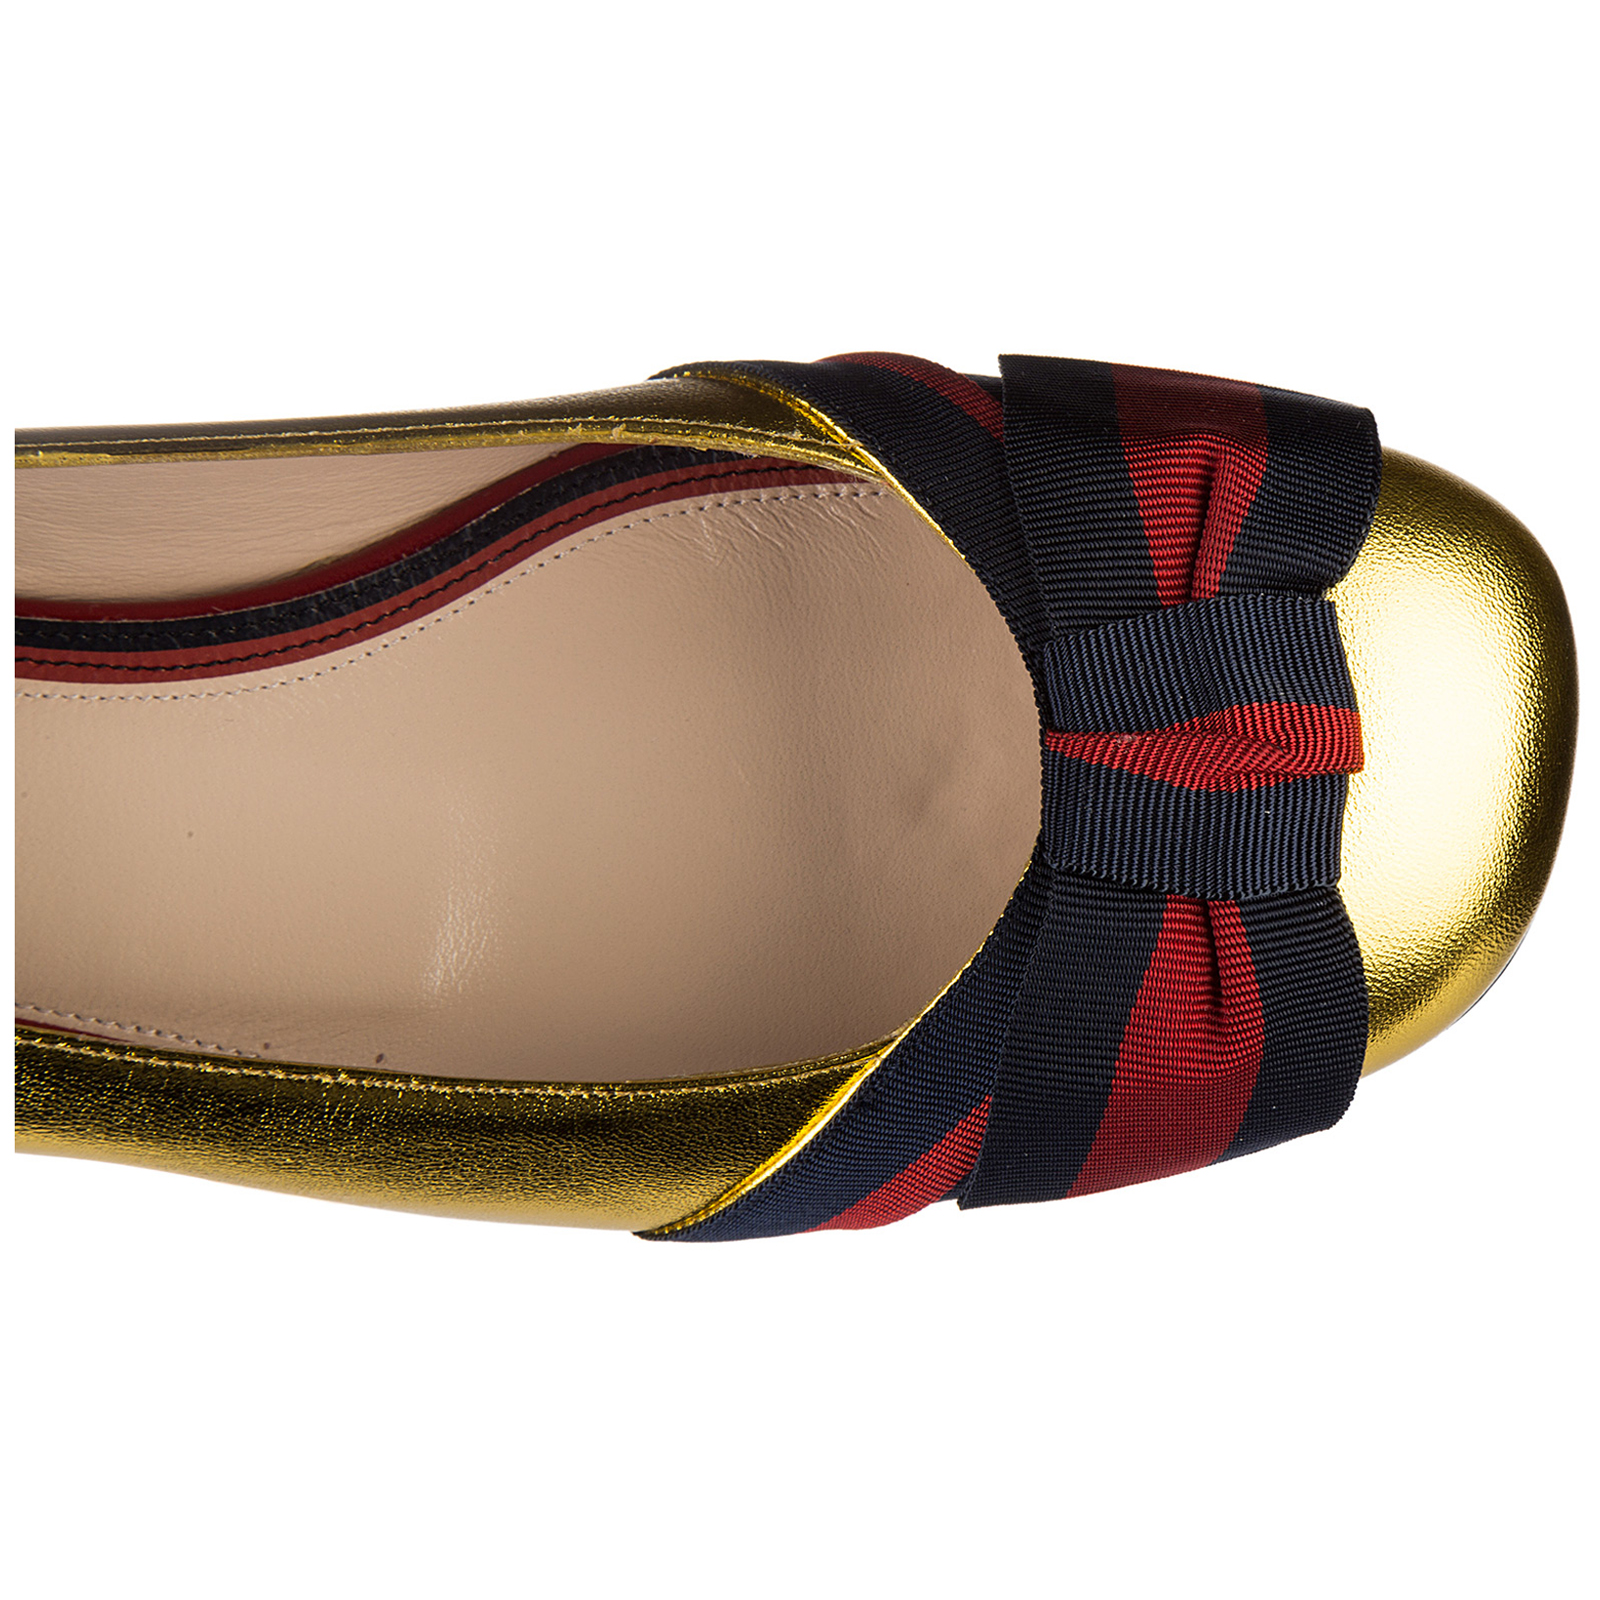 Women's leather ballet flats ballerinas  nappa silk gross grain